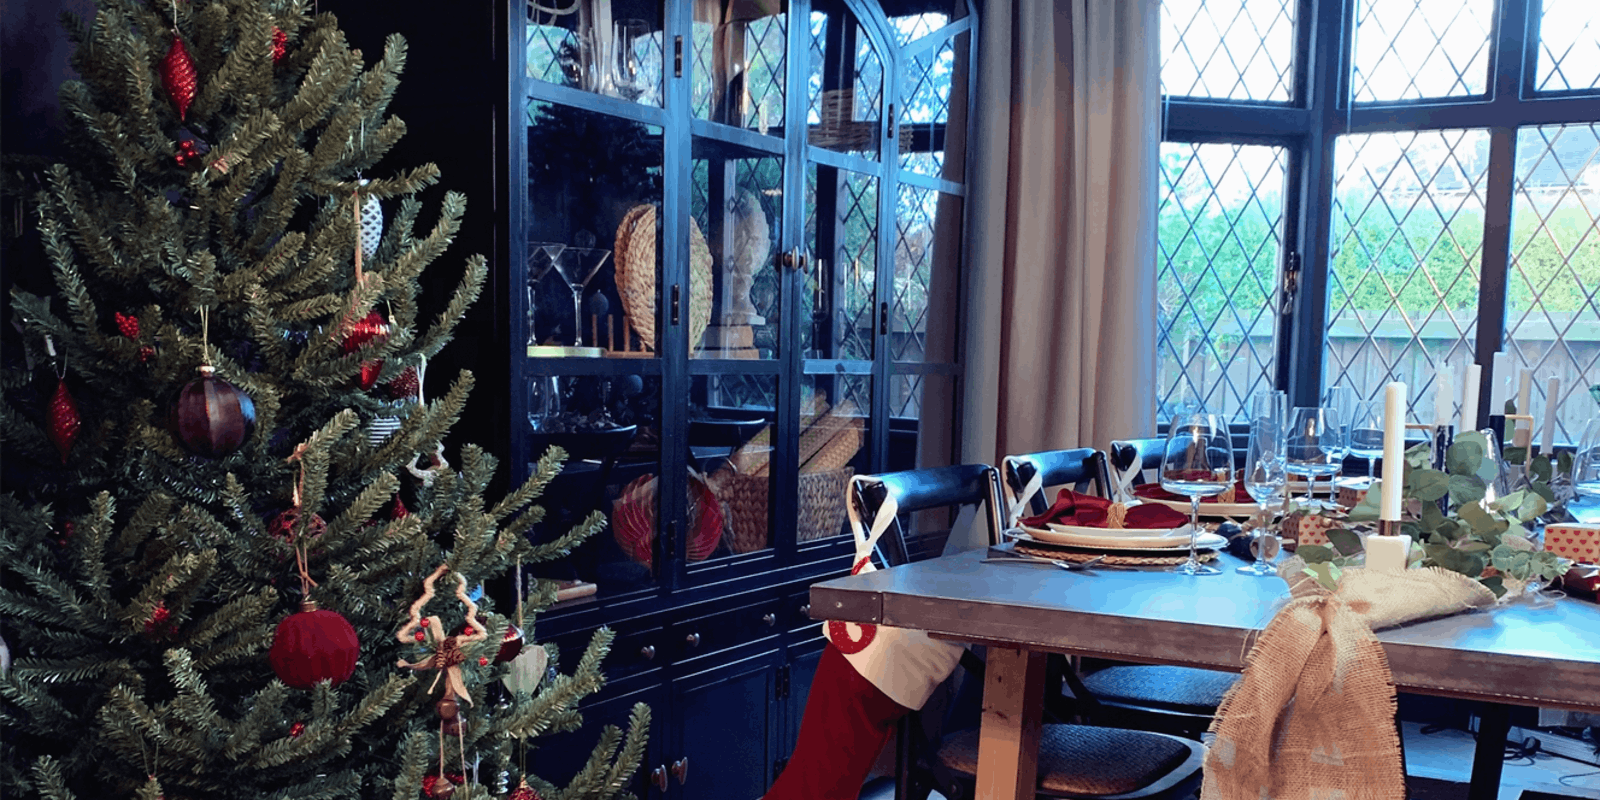 Dining area with Christmas tree and Christmas decorations